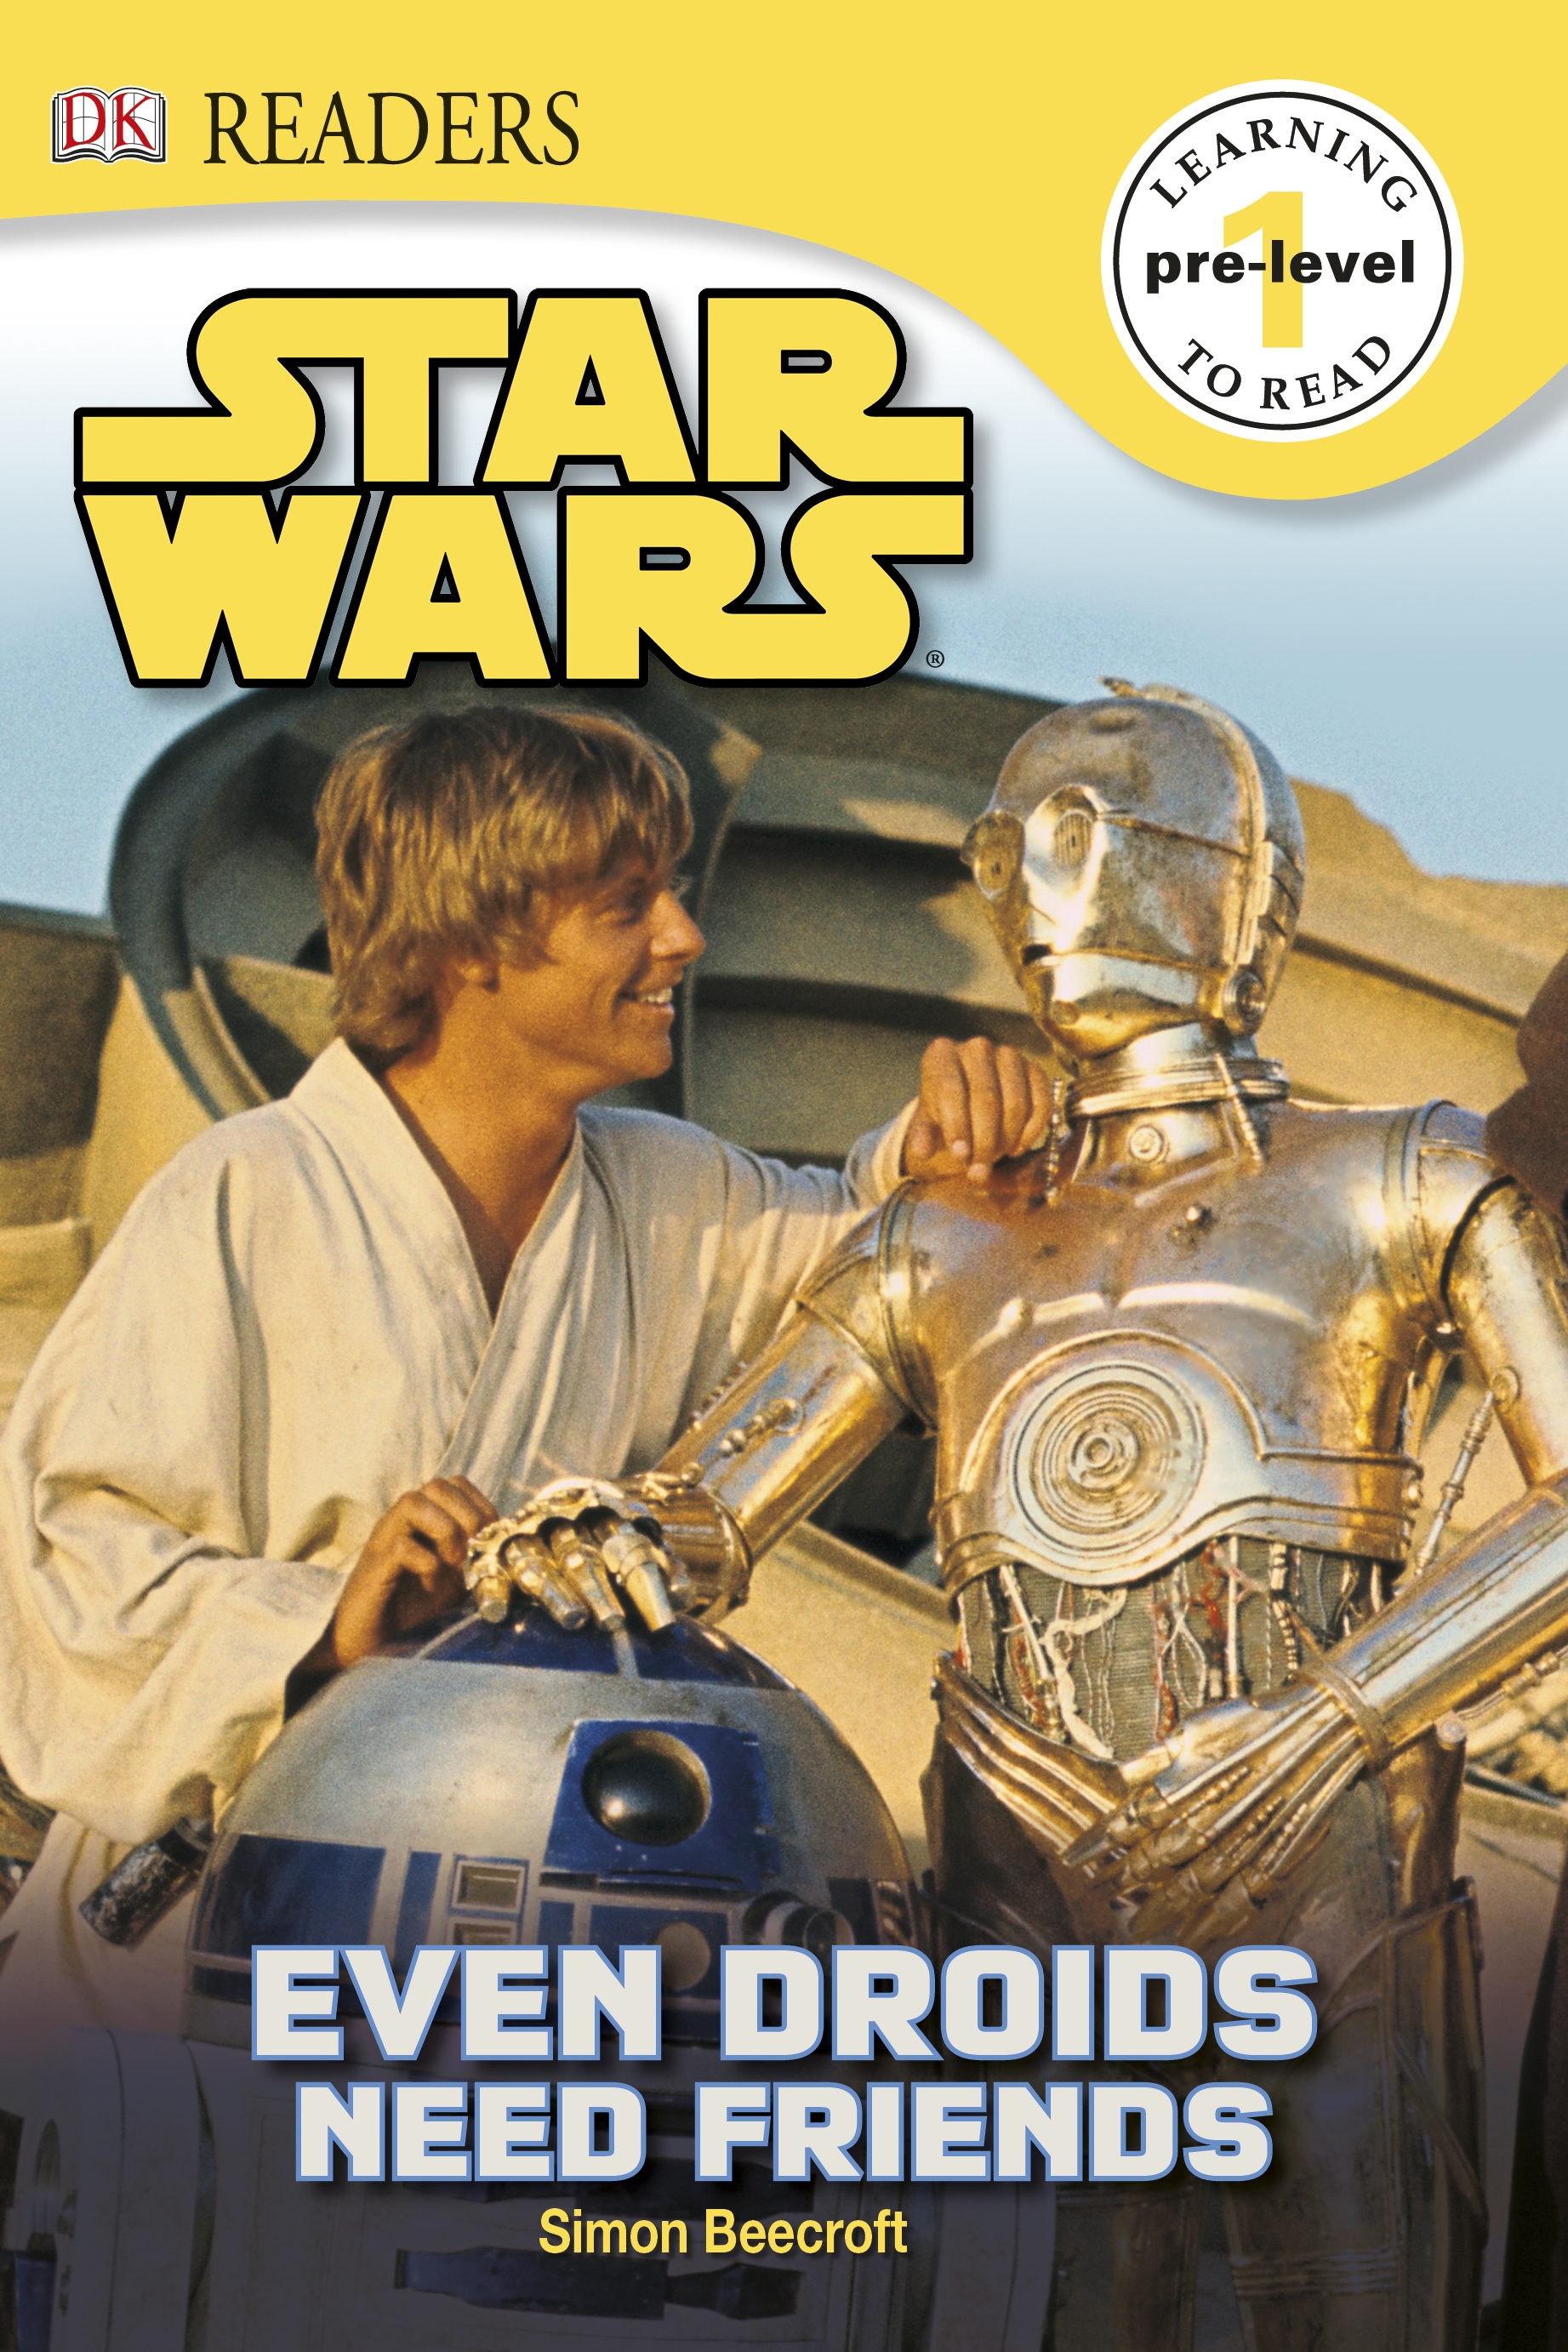 Star Wars: Even Droids Need Friends